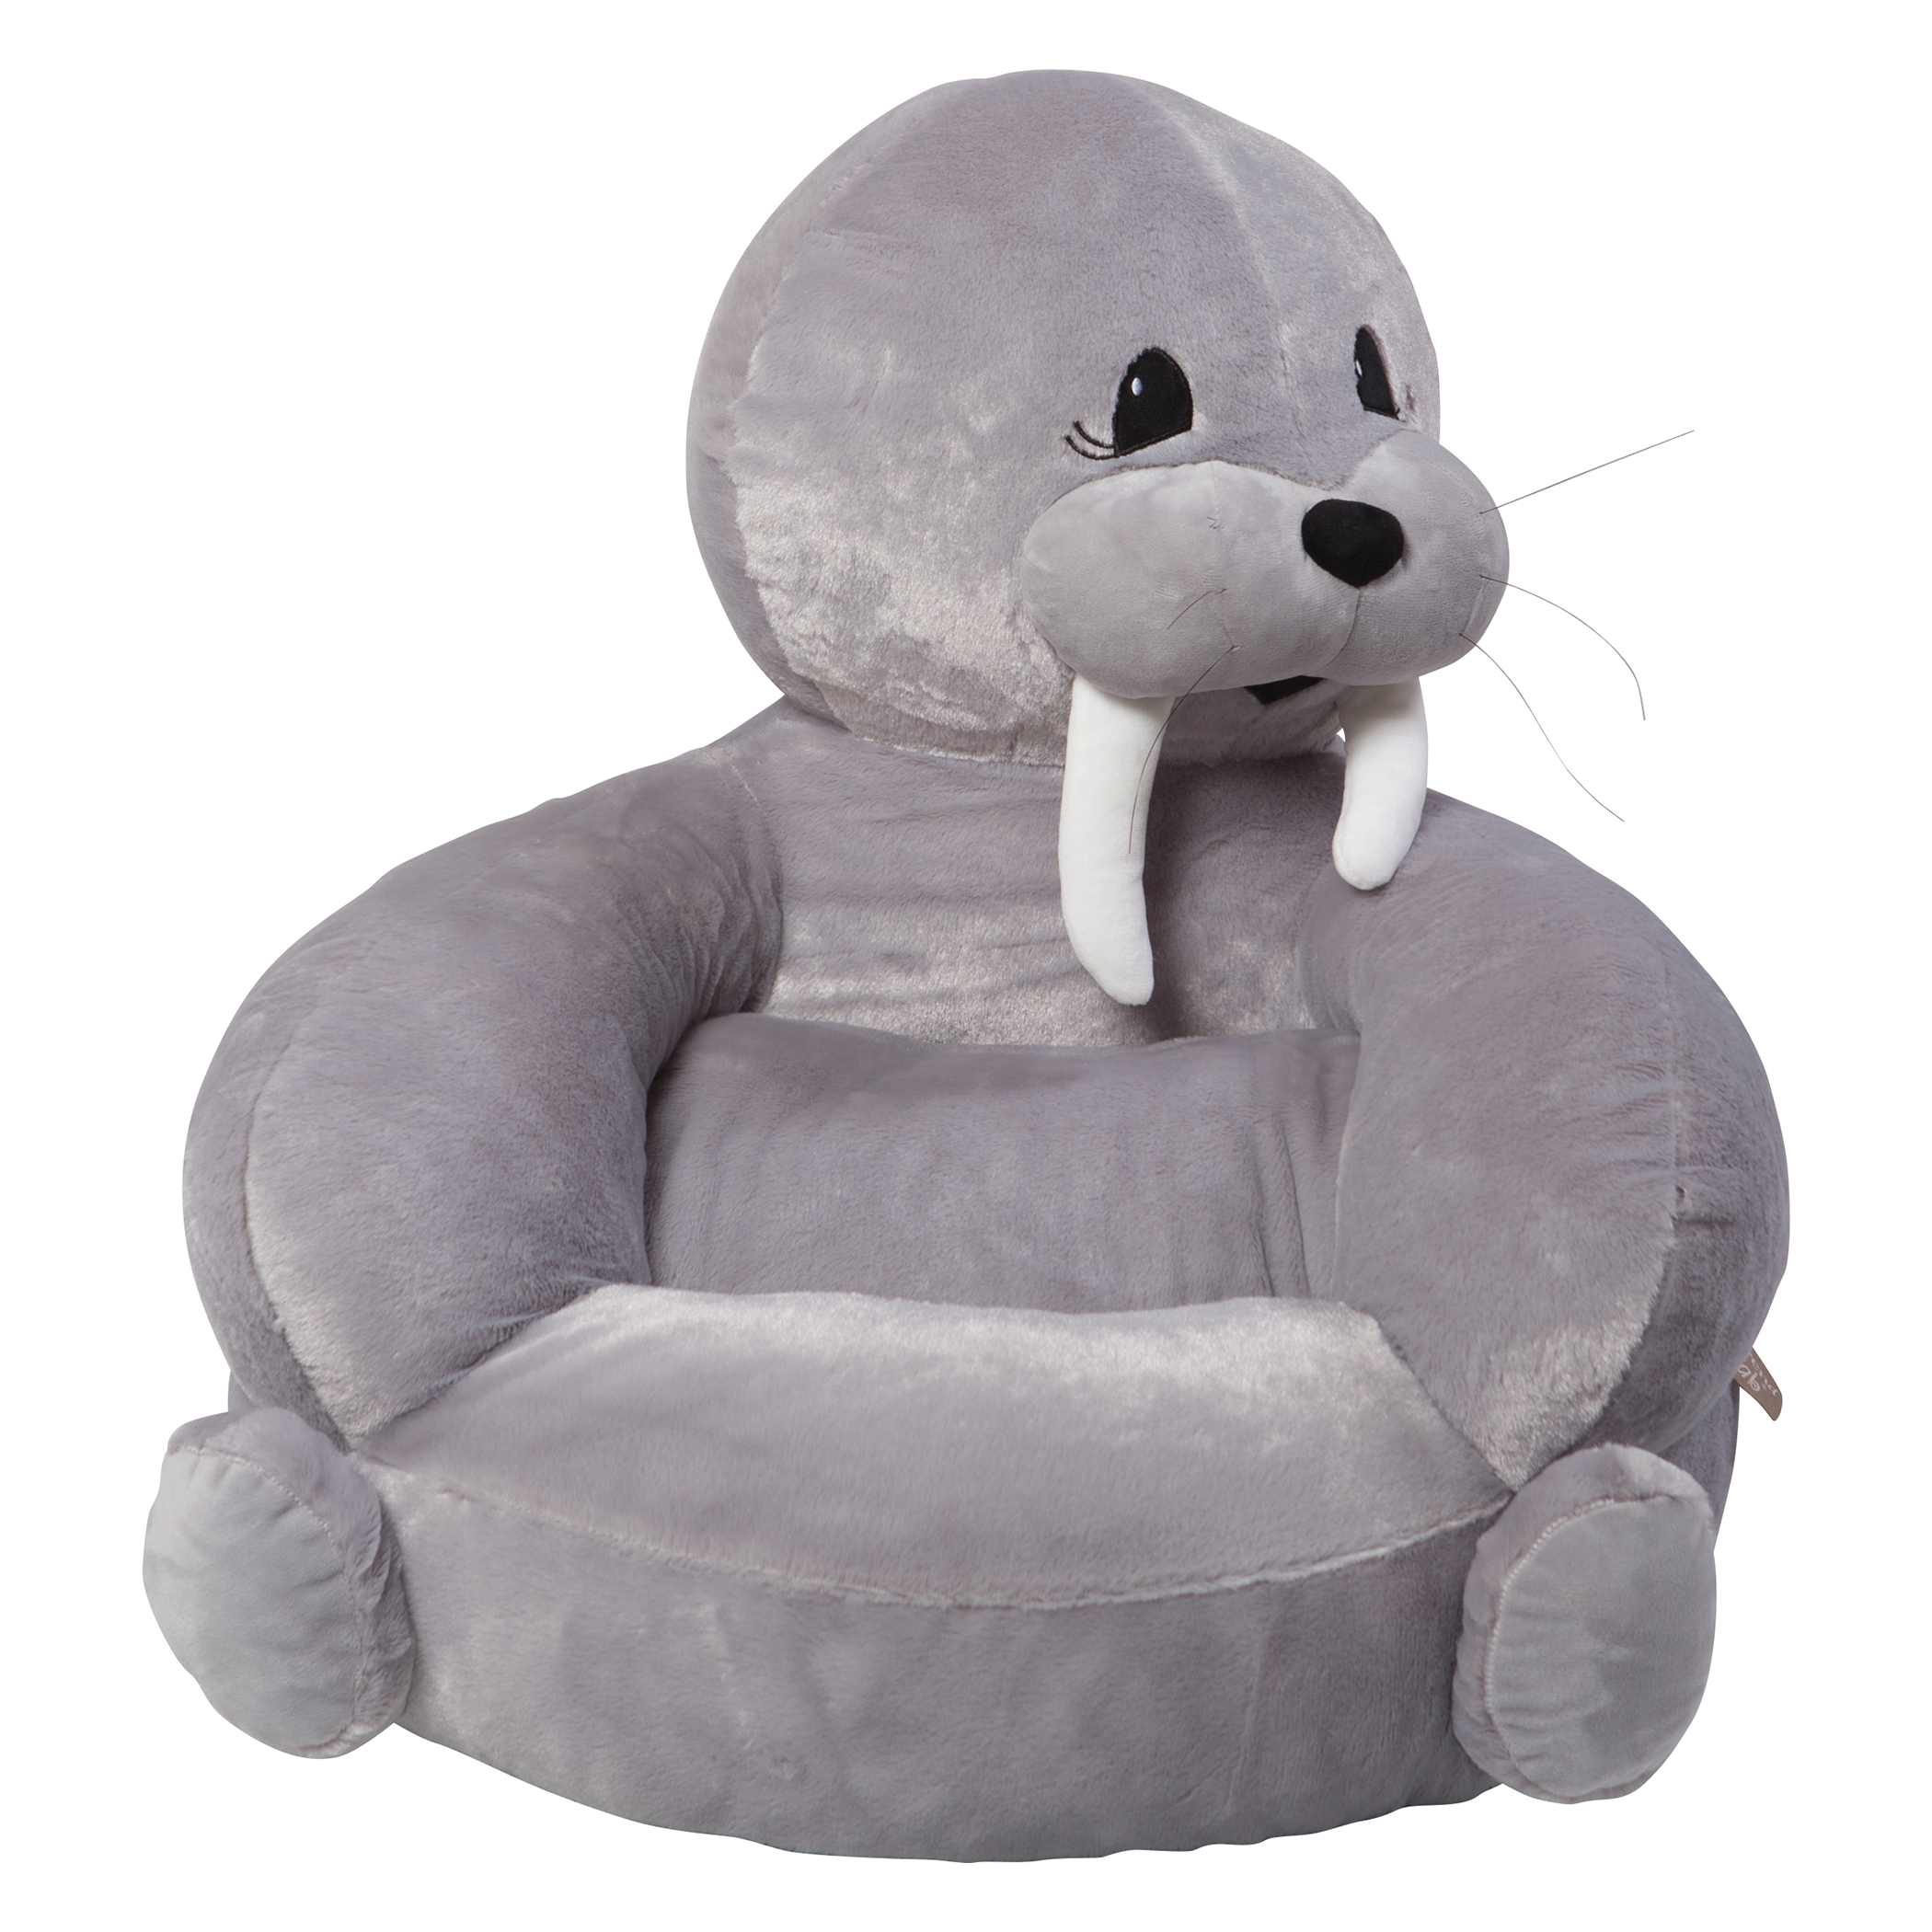 Plush Toddler Chair Trend Lab 102655 Children 39s Plush Character Chair Walrus